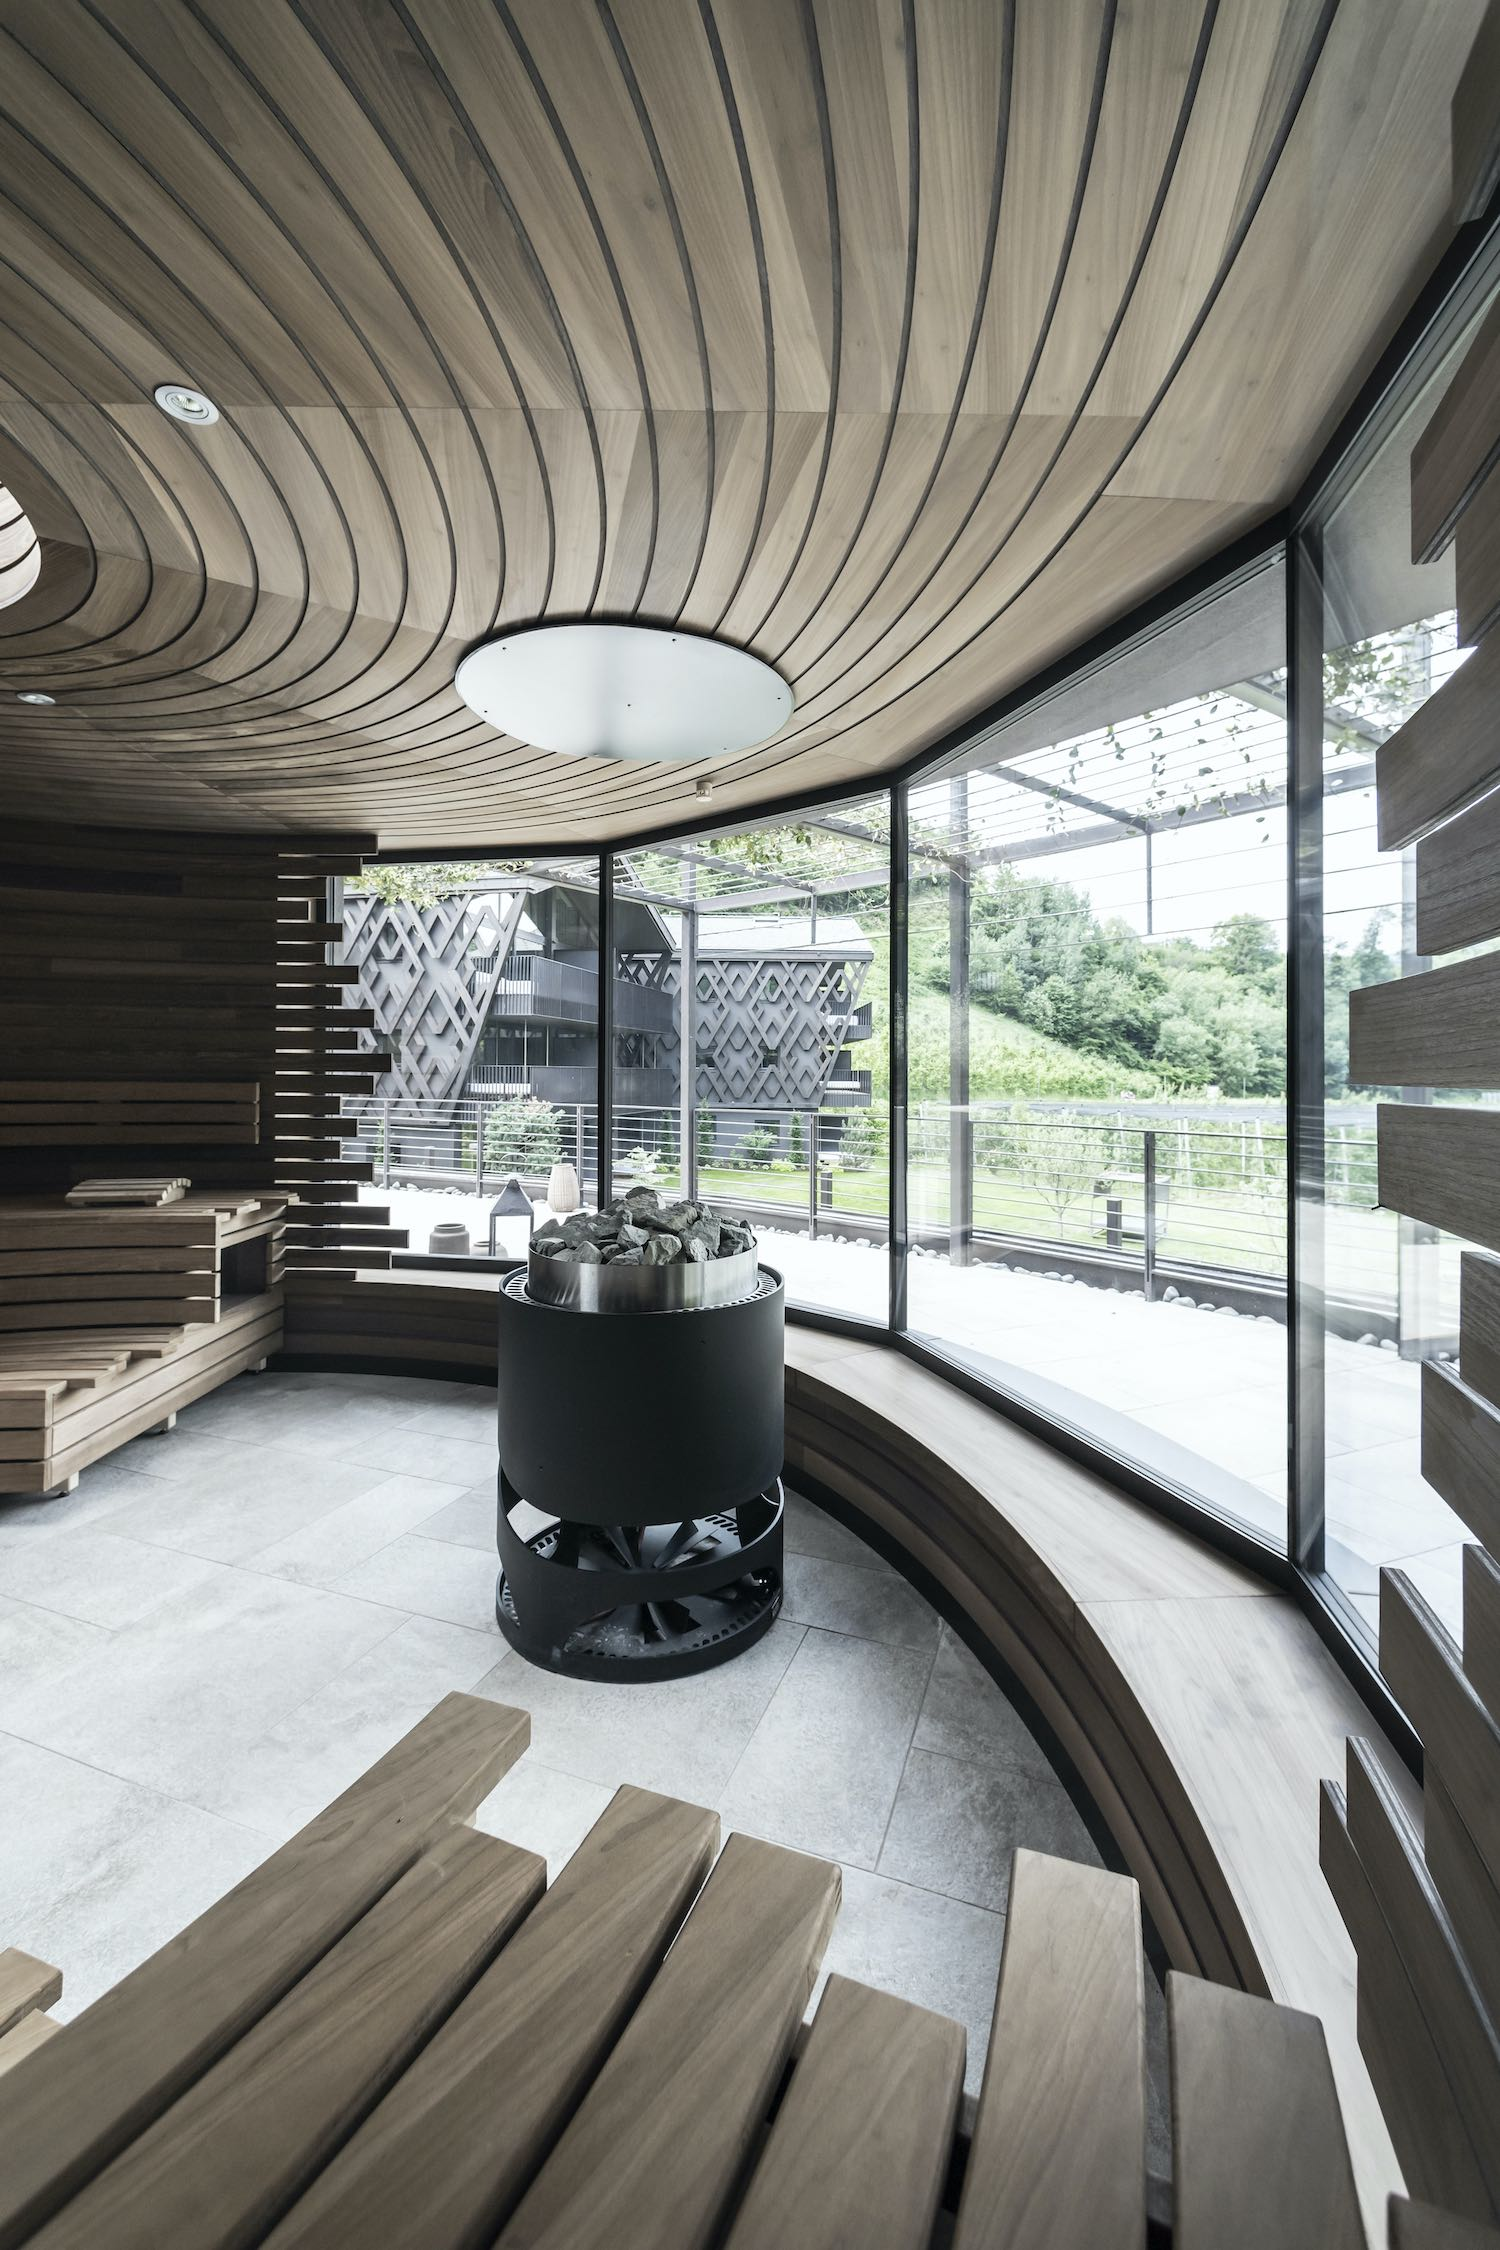 circular room with wooden benches and metallic fireplace